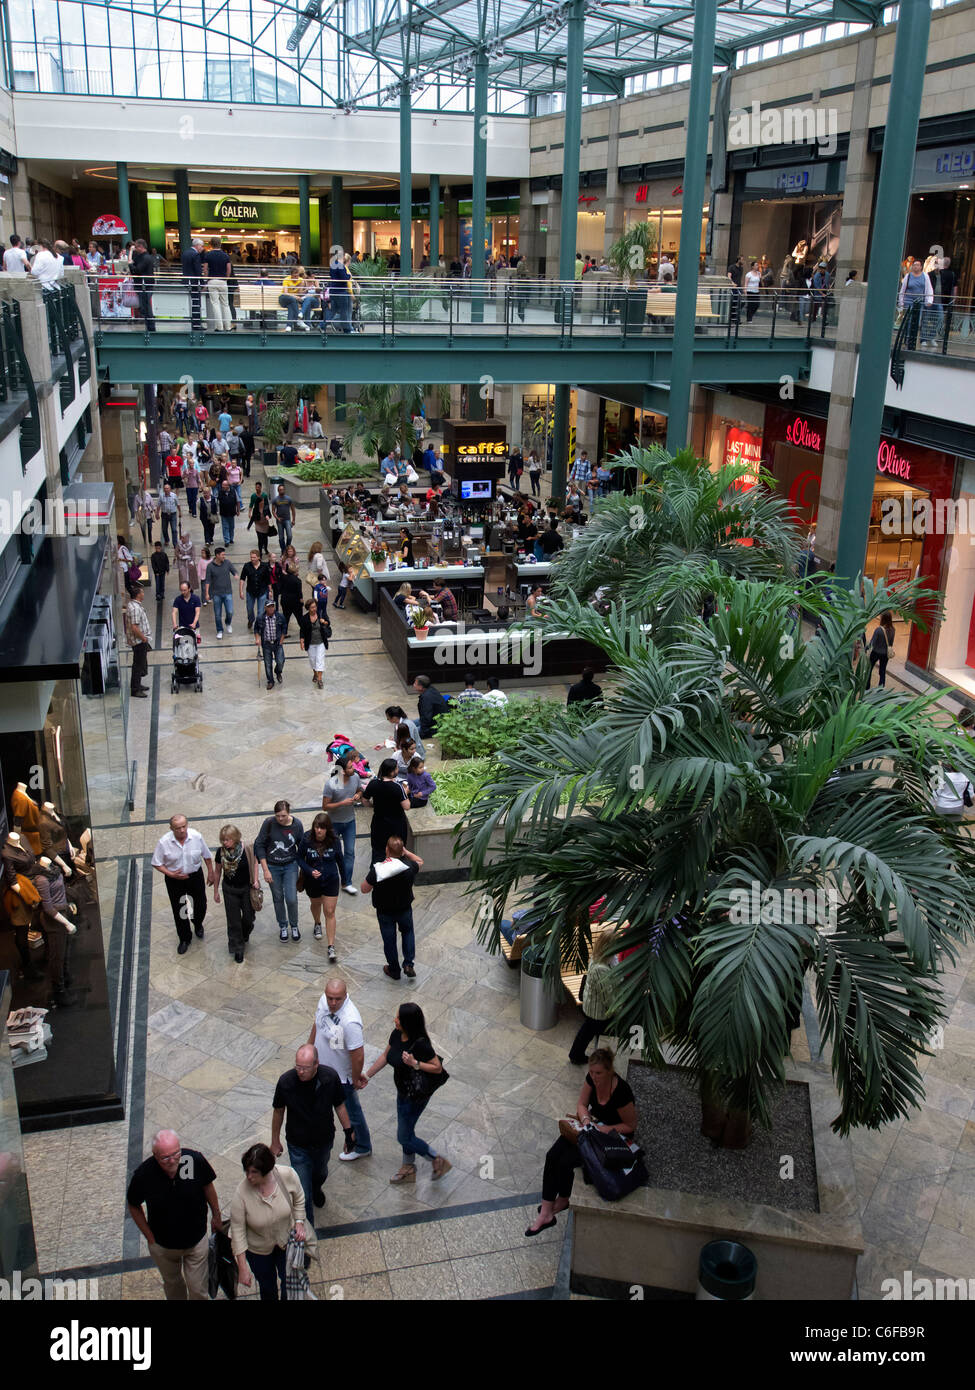 Interior of atrium in Centro one of Europe's largest shopping mall in Oberhausen Germany - Stock Image